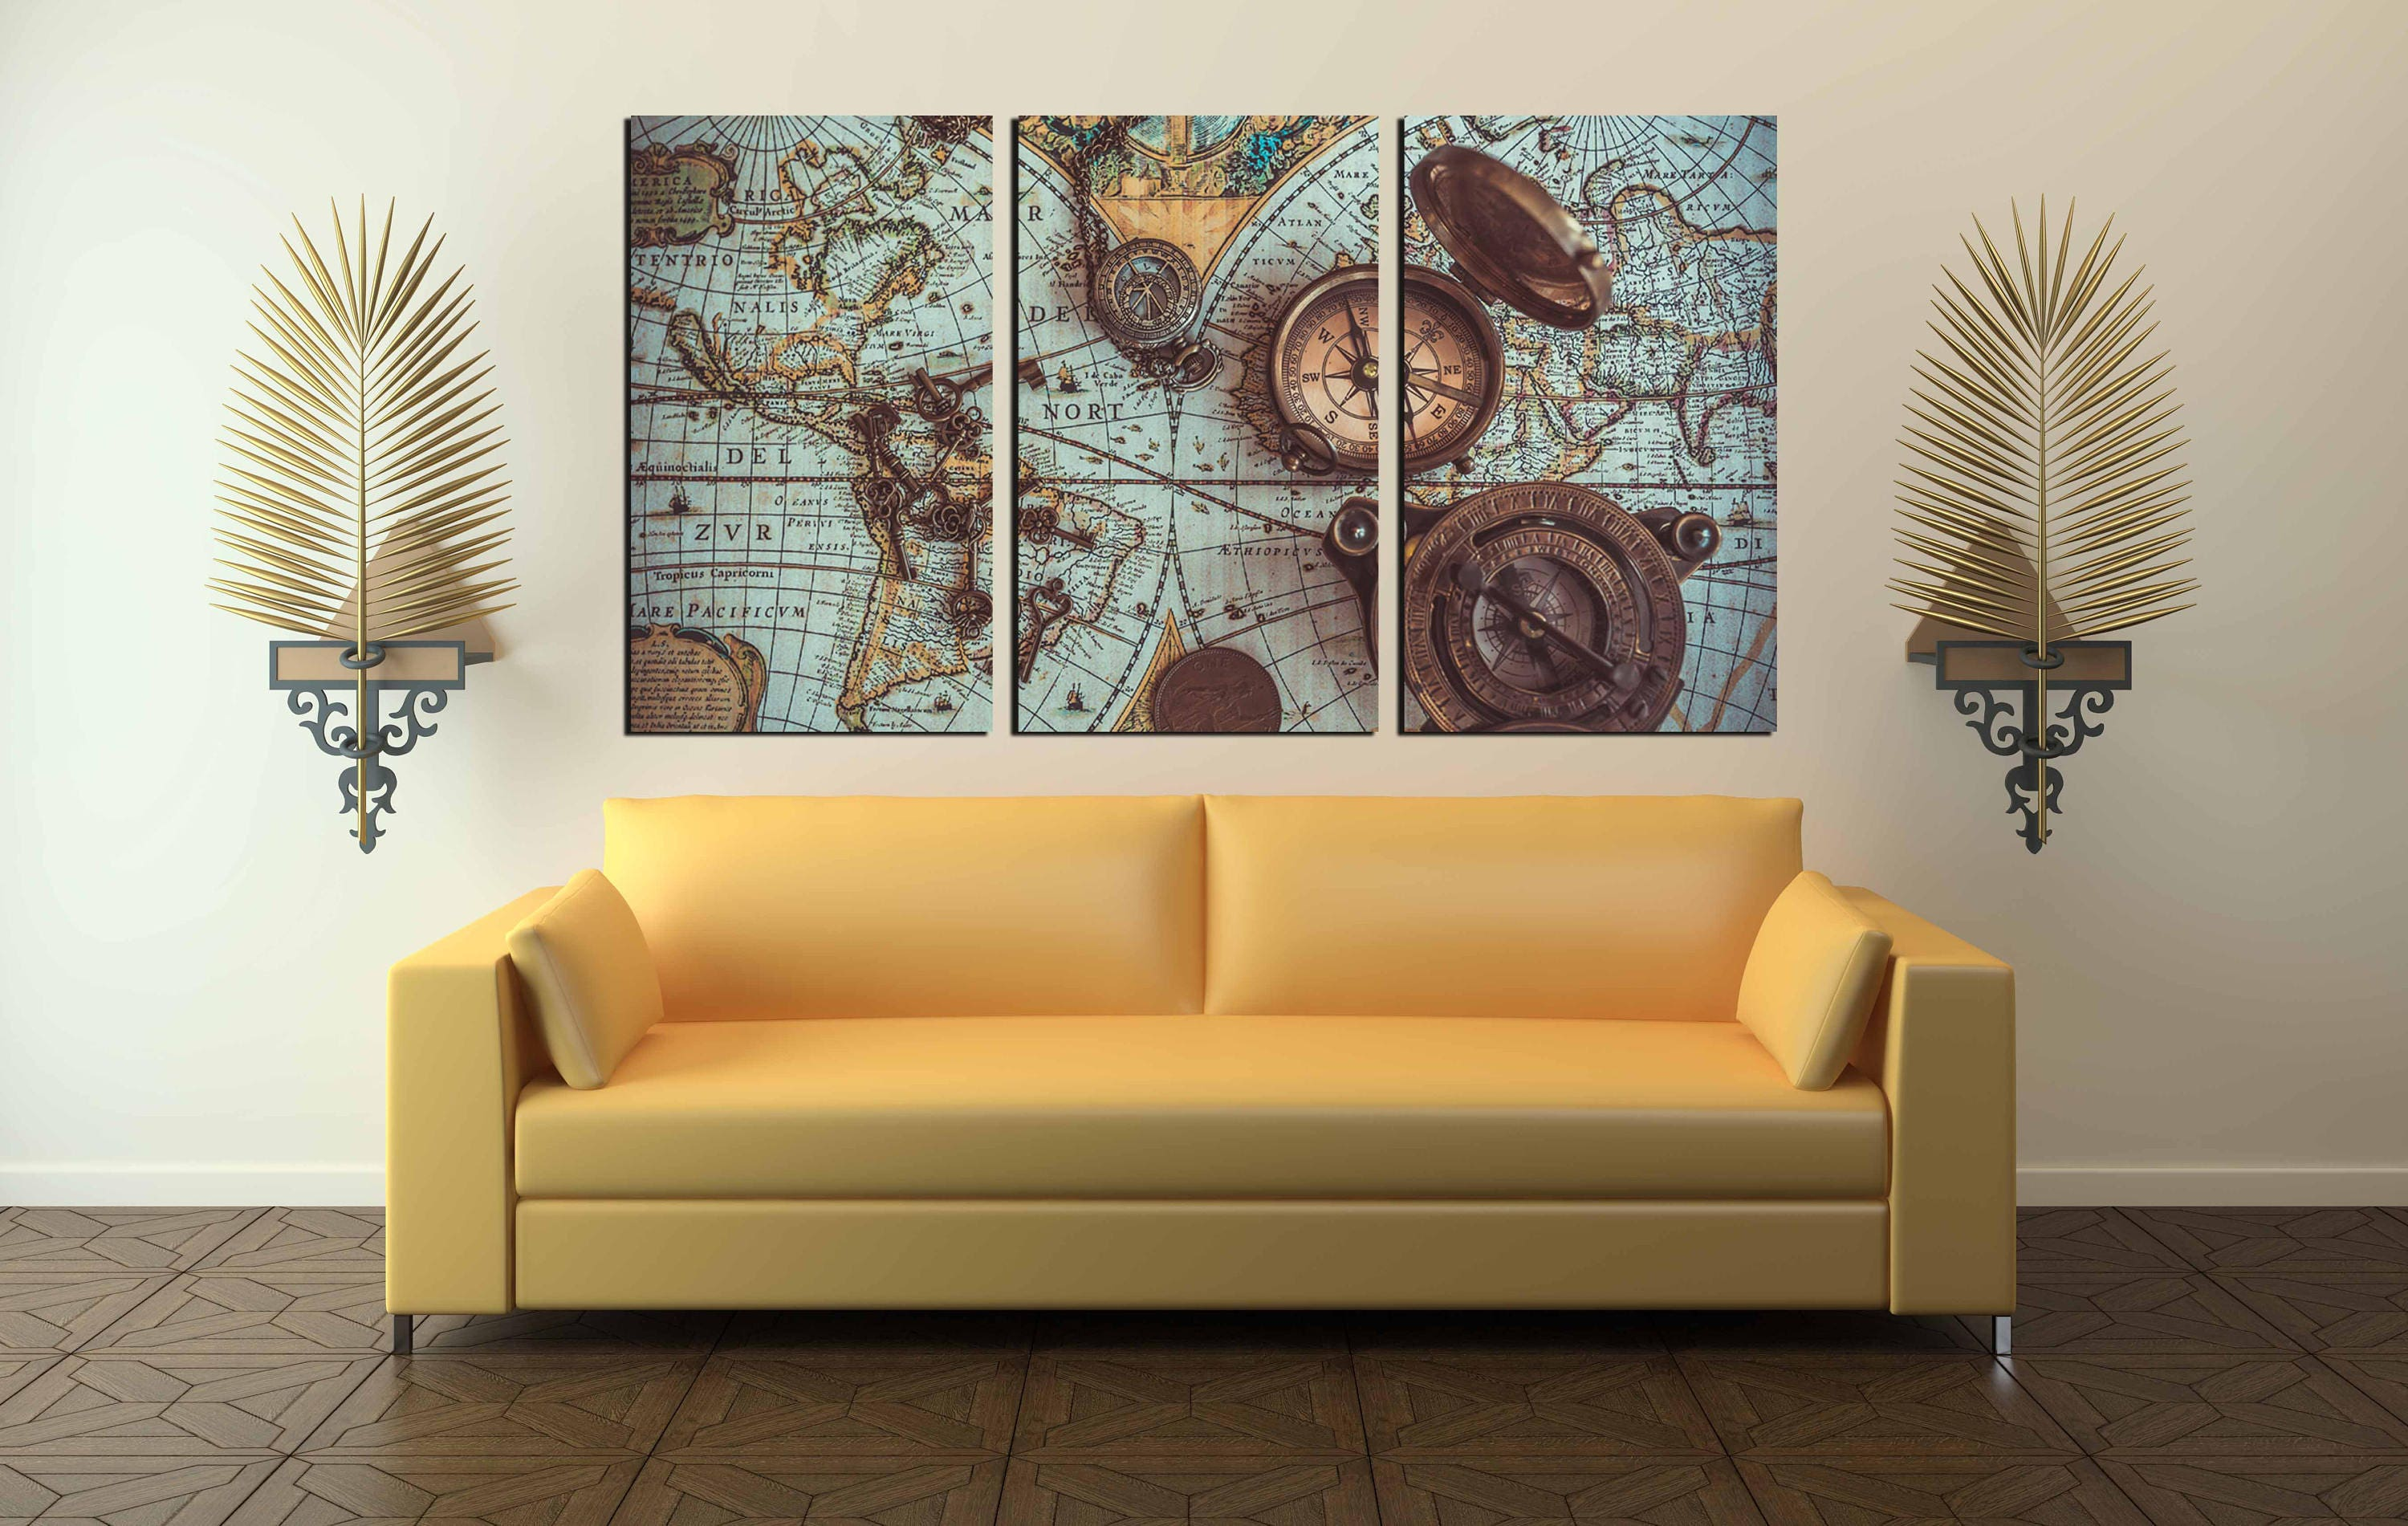 World map vintageantique world maplarge antique mapantique wall world map vintageantique world maplarge antique mapantique wall artvintage map canvasvintage map panel ancient world mapantique map freerunsca Image collections